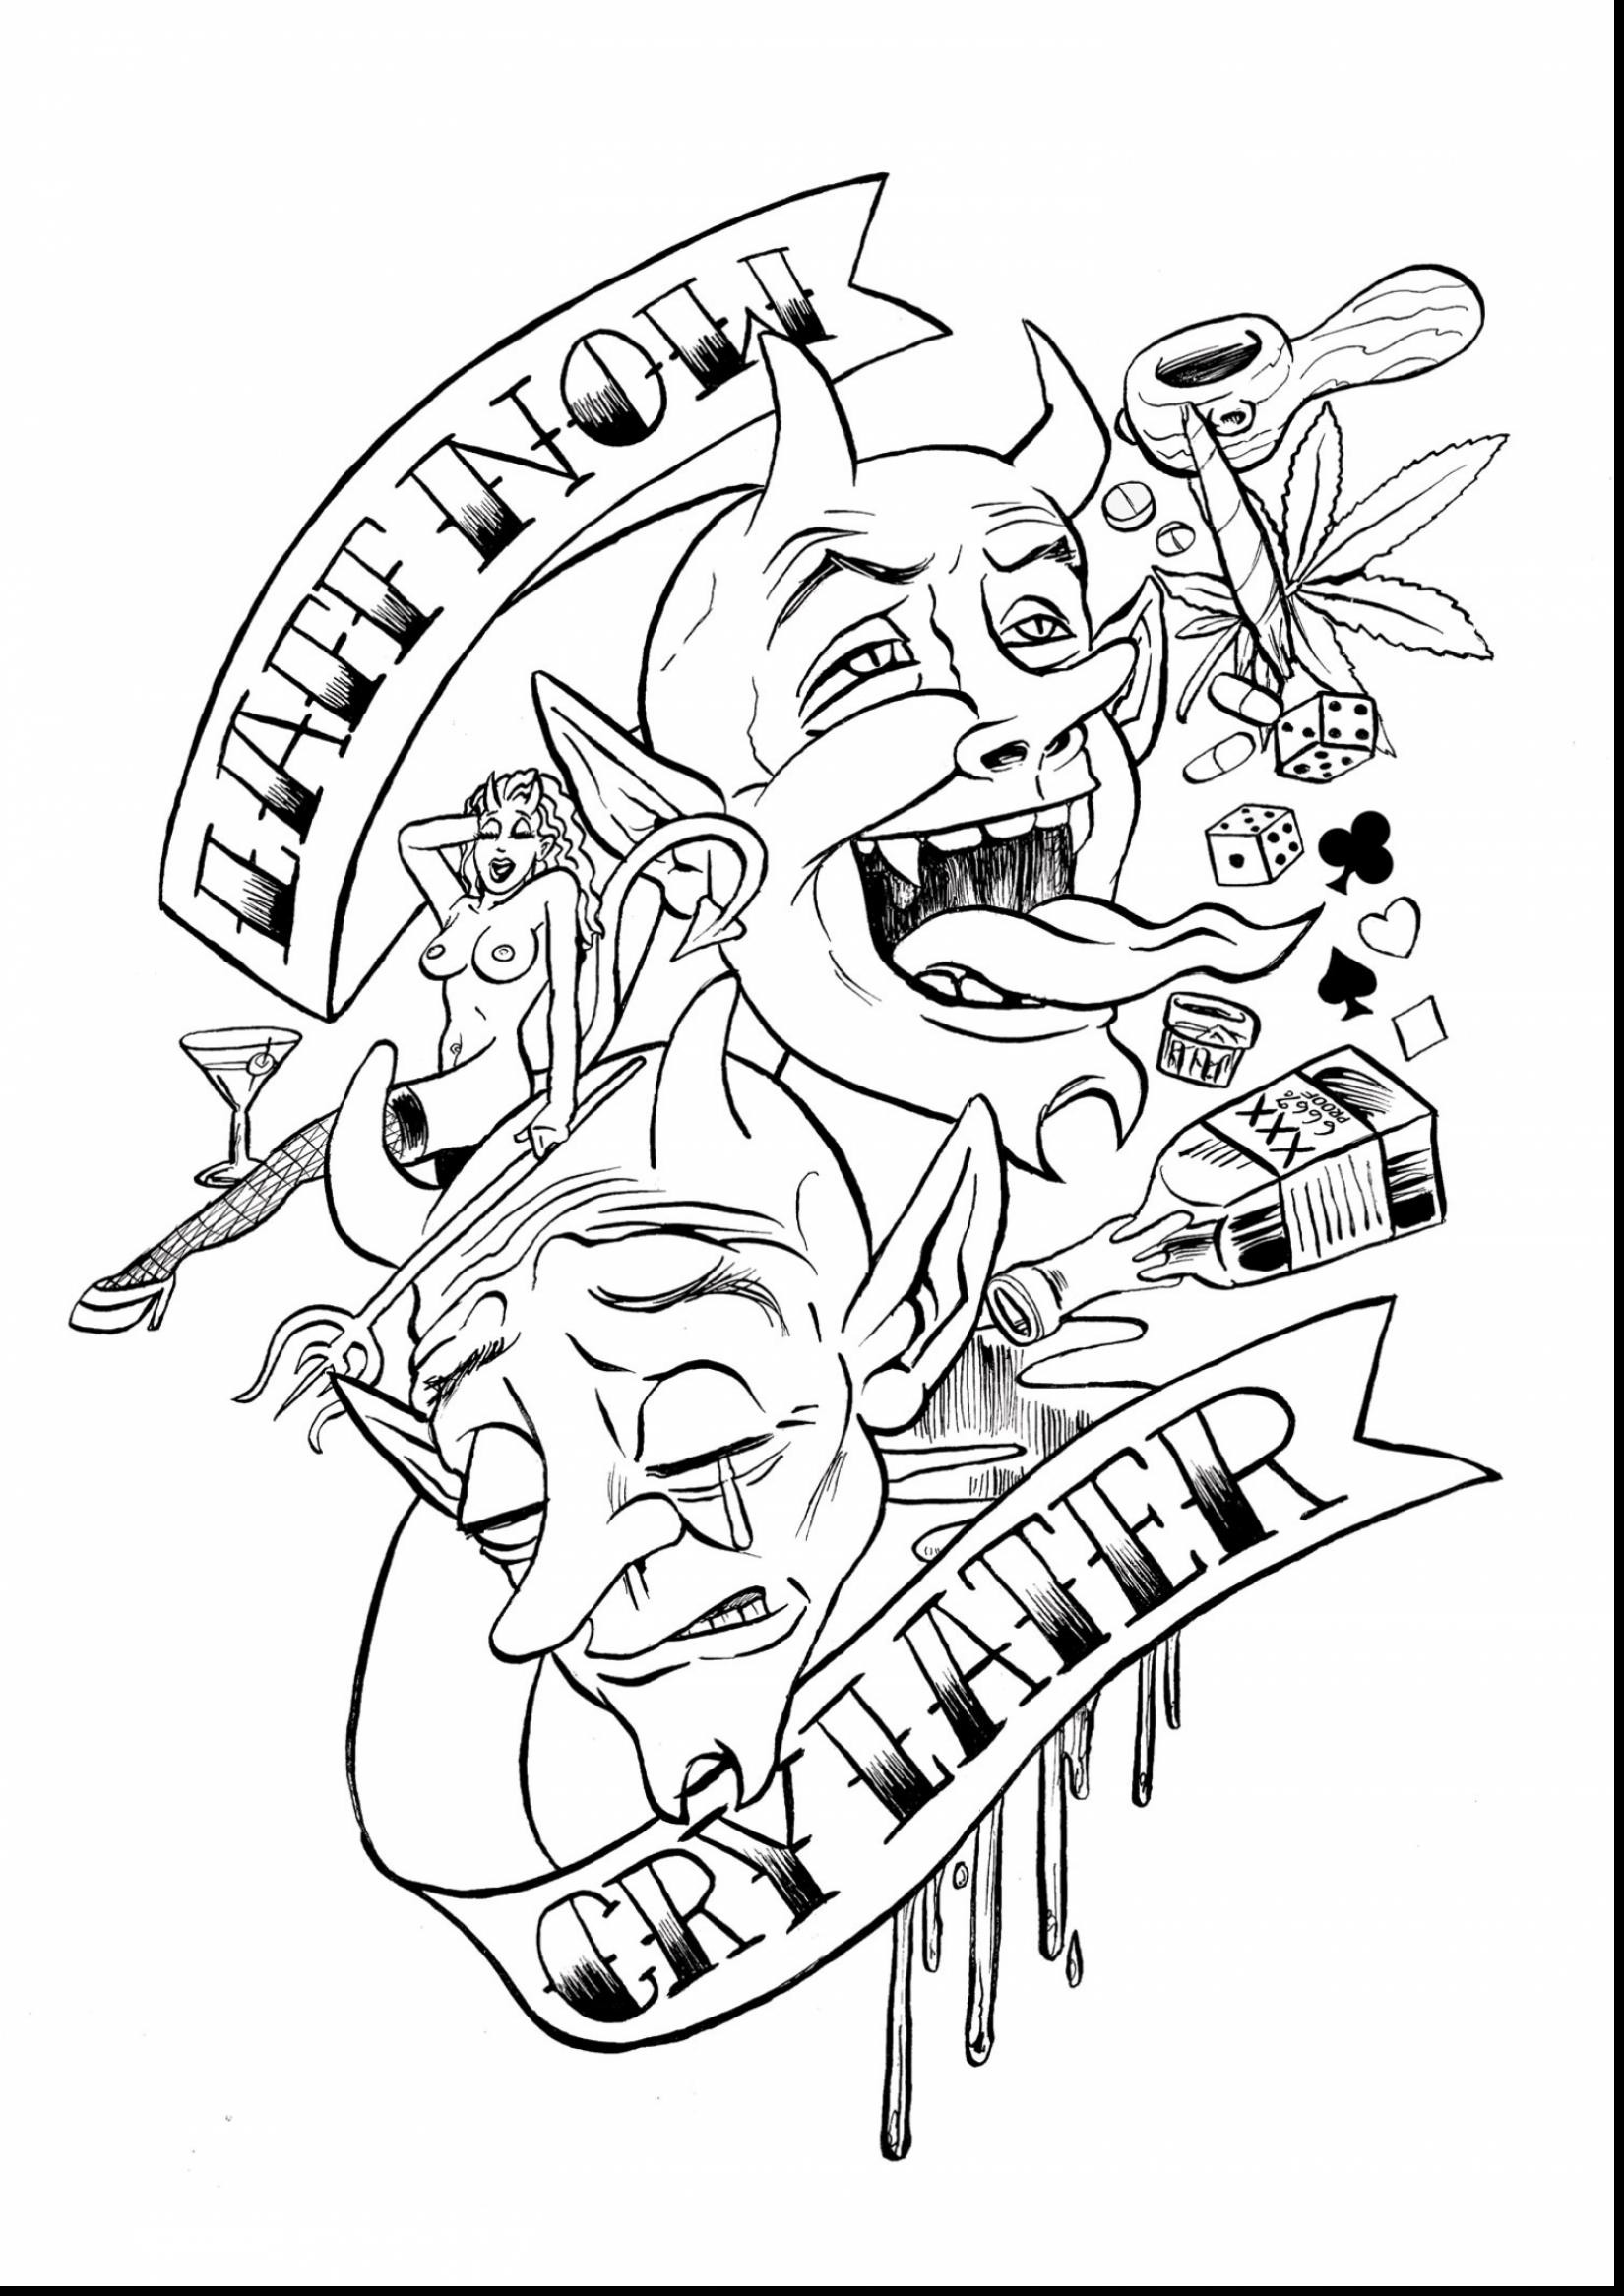 tattoo coloring pages printable 26 best body art coloring pages images on pinterest tattoo coloring printable pages